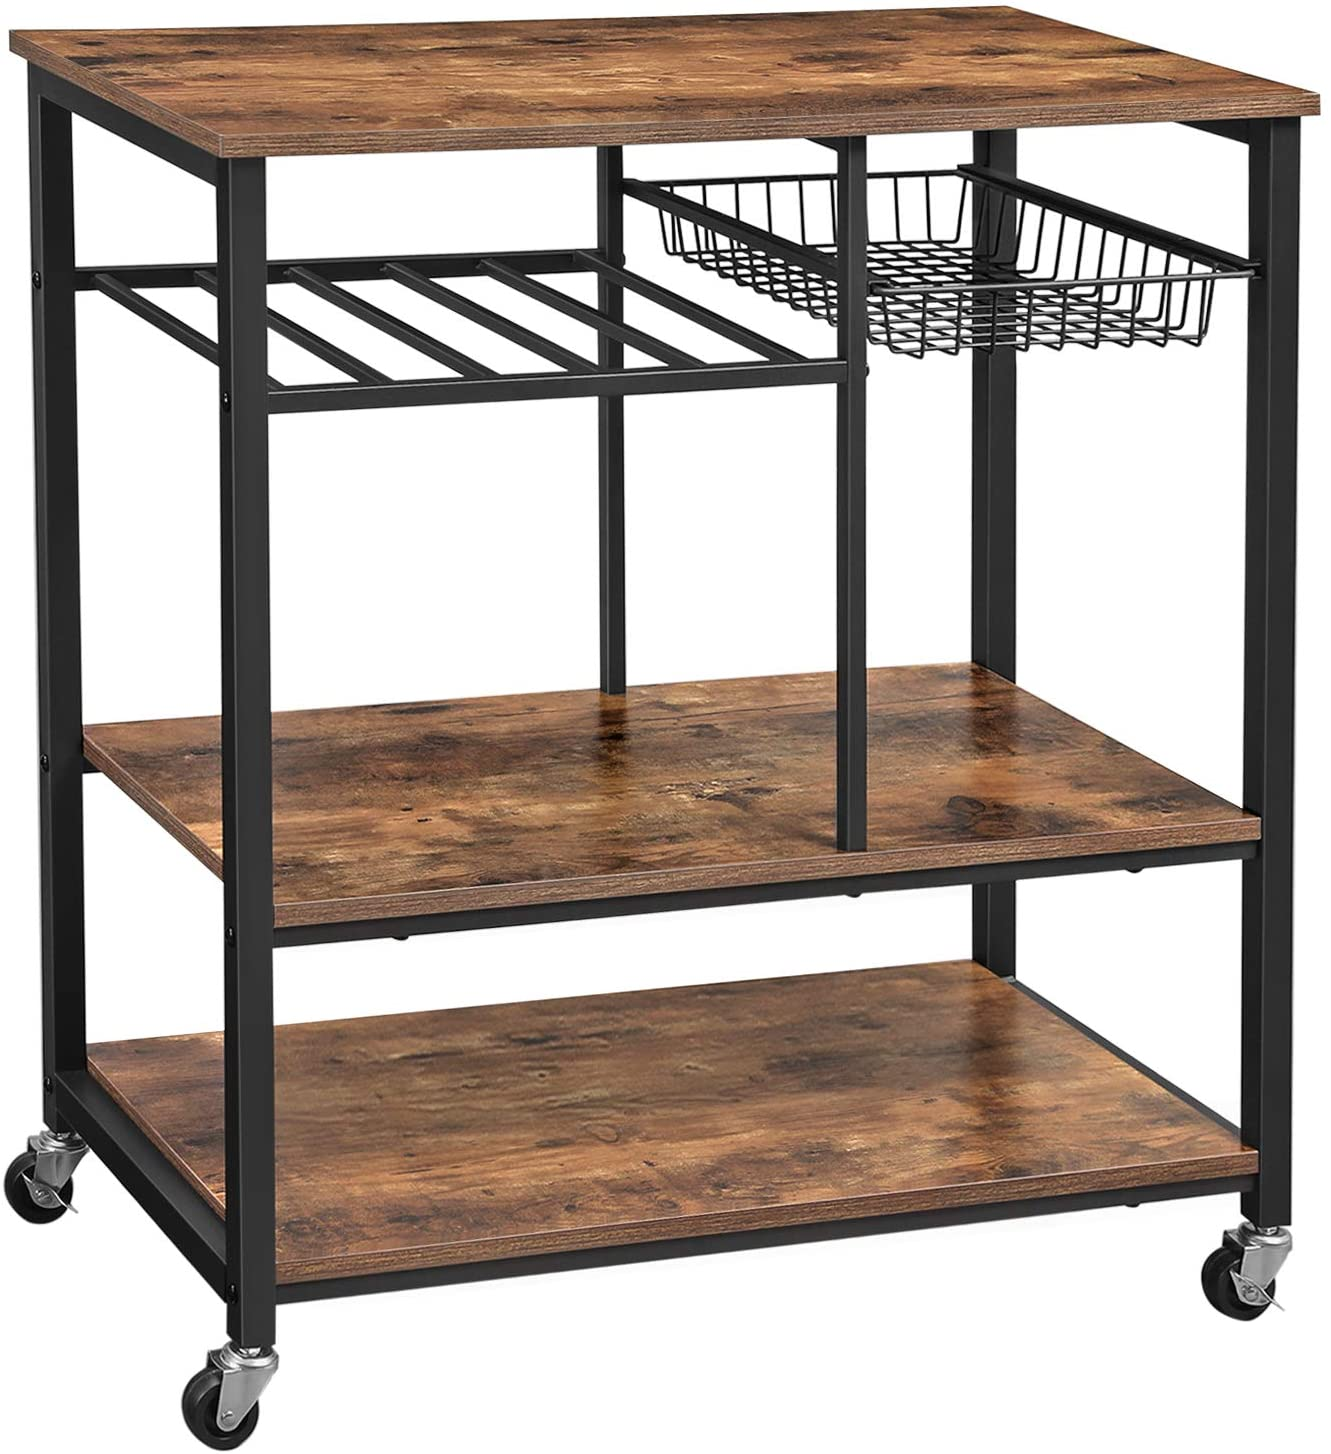 Enjoy fast, free nationwide shipping!  Owned by a husband and wife team of high-school music teachers, HawkinsWoodshop.com is your one stop shop for affordable furniture.  Shop HawkinsWoodshop.com for solid wood & metal modern, traditional, contemporary, industrial, custom, rustic, and farmhouse furniture including our Ryan Utility Kitchen Cart.